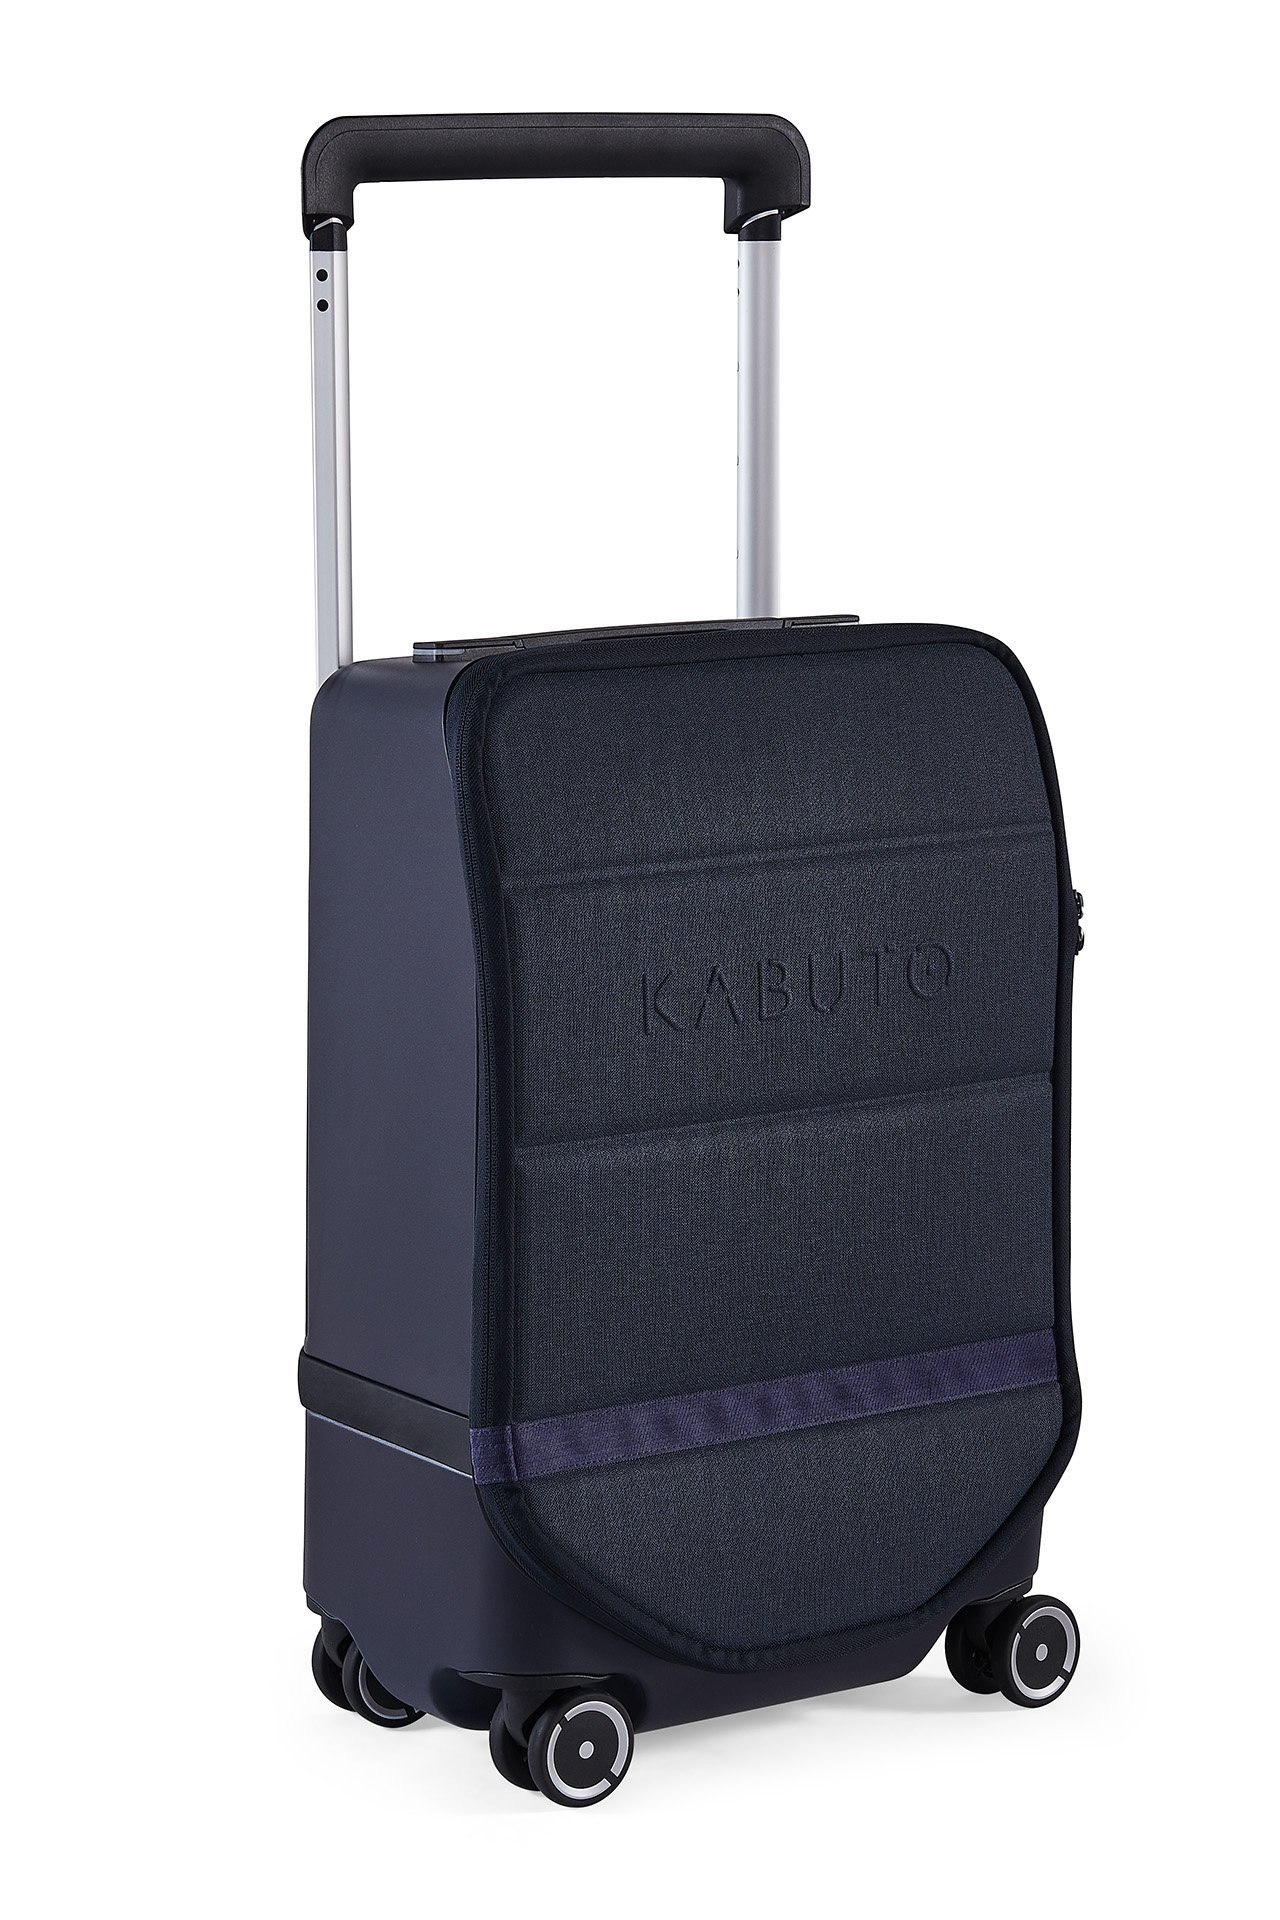 Kabuto Carry-On 4 Wheels